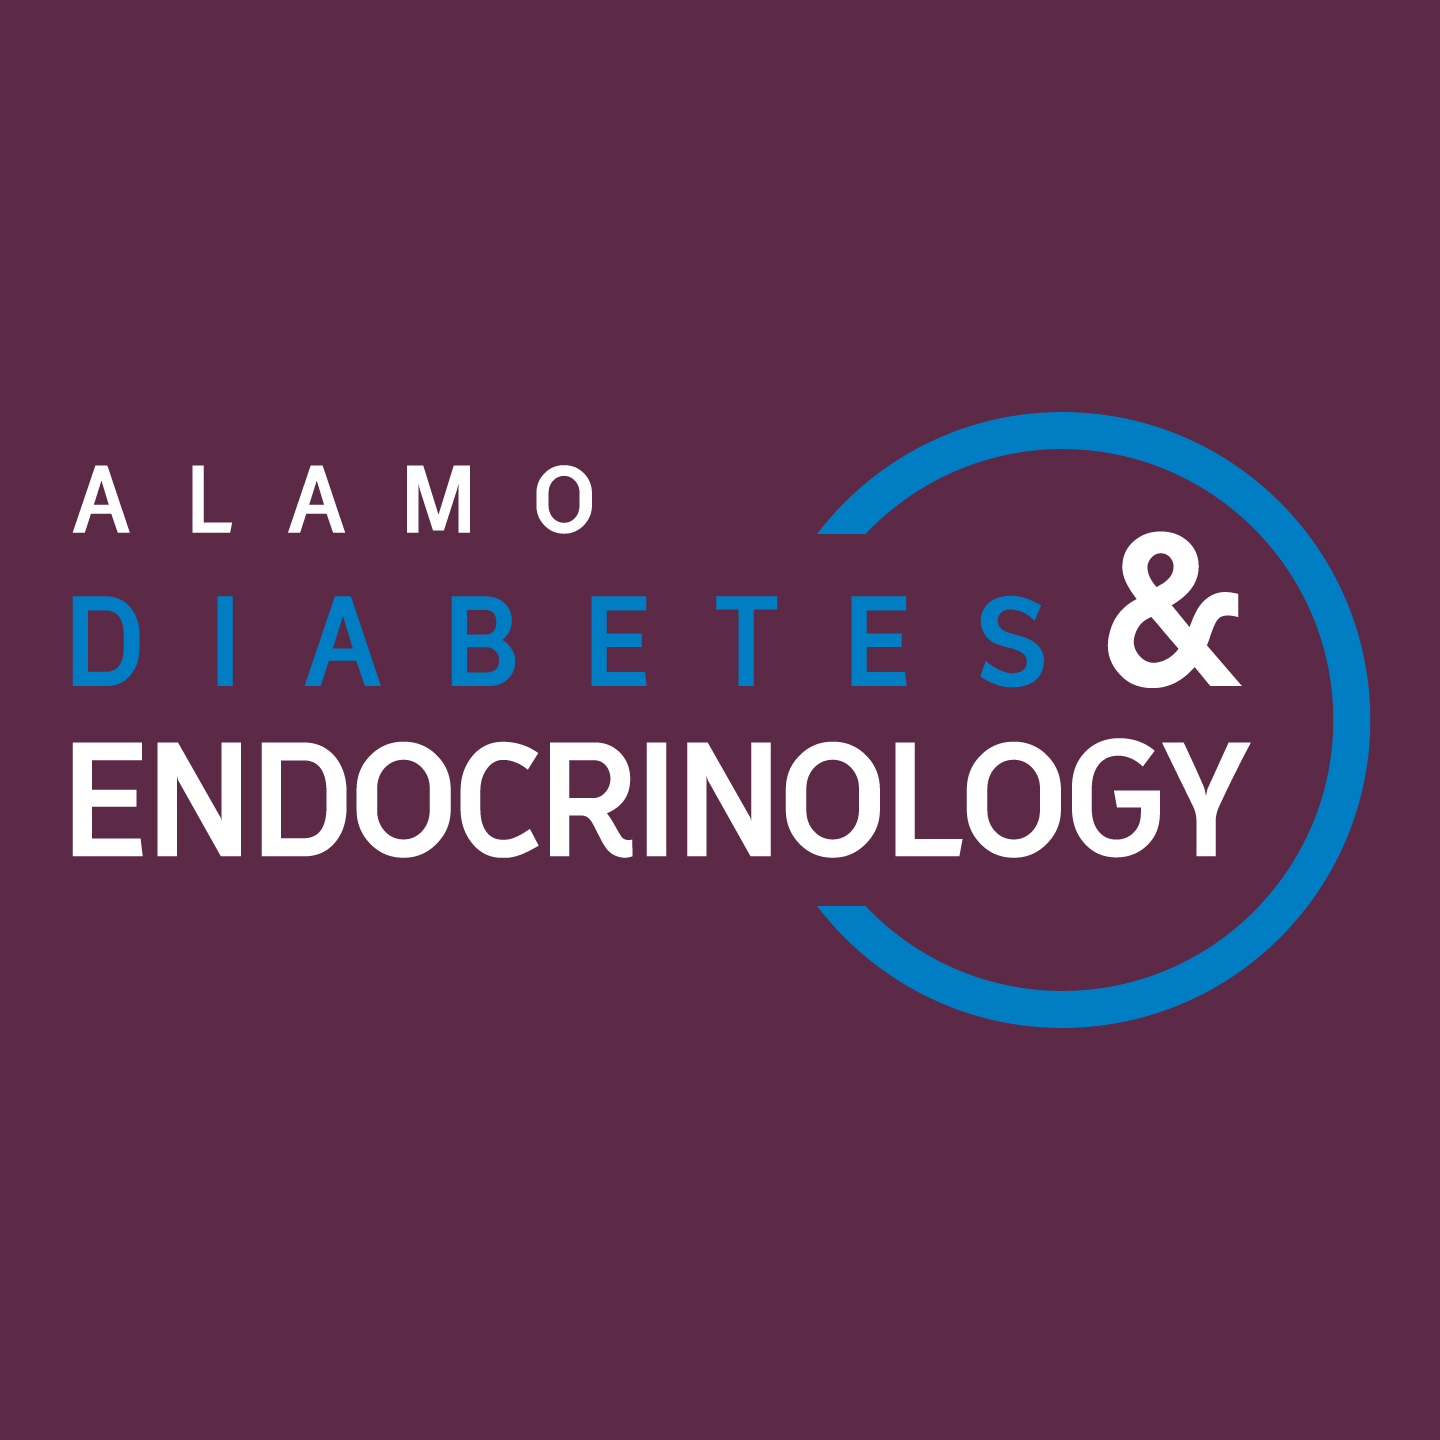 Alamo Diabetes and Endocrinology